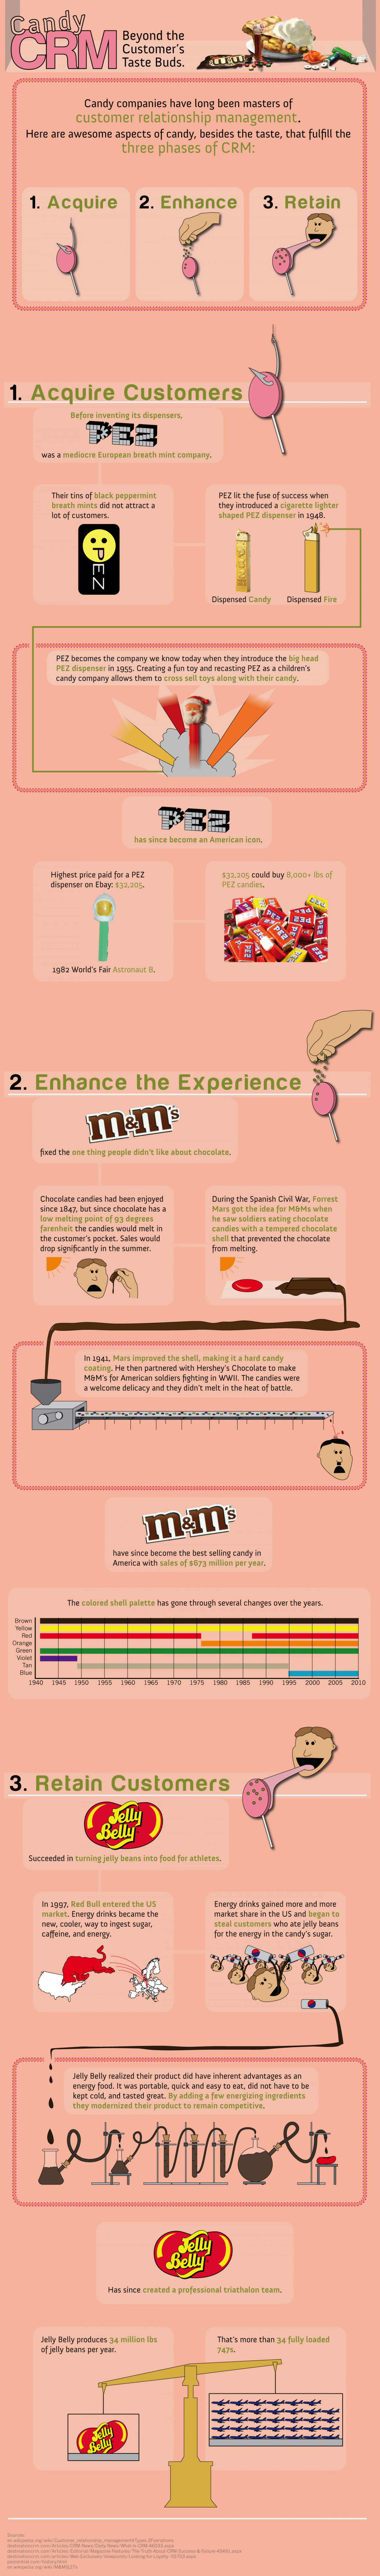 Candy CRM: Beyond the Customer's Taste Buds Infographic